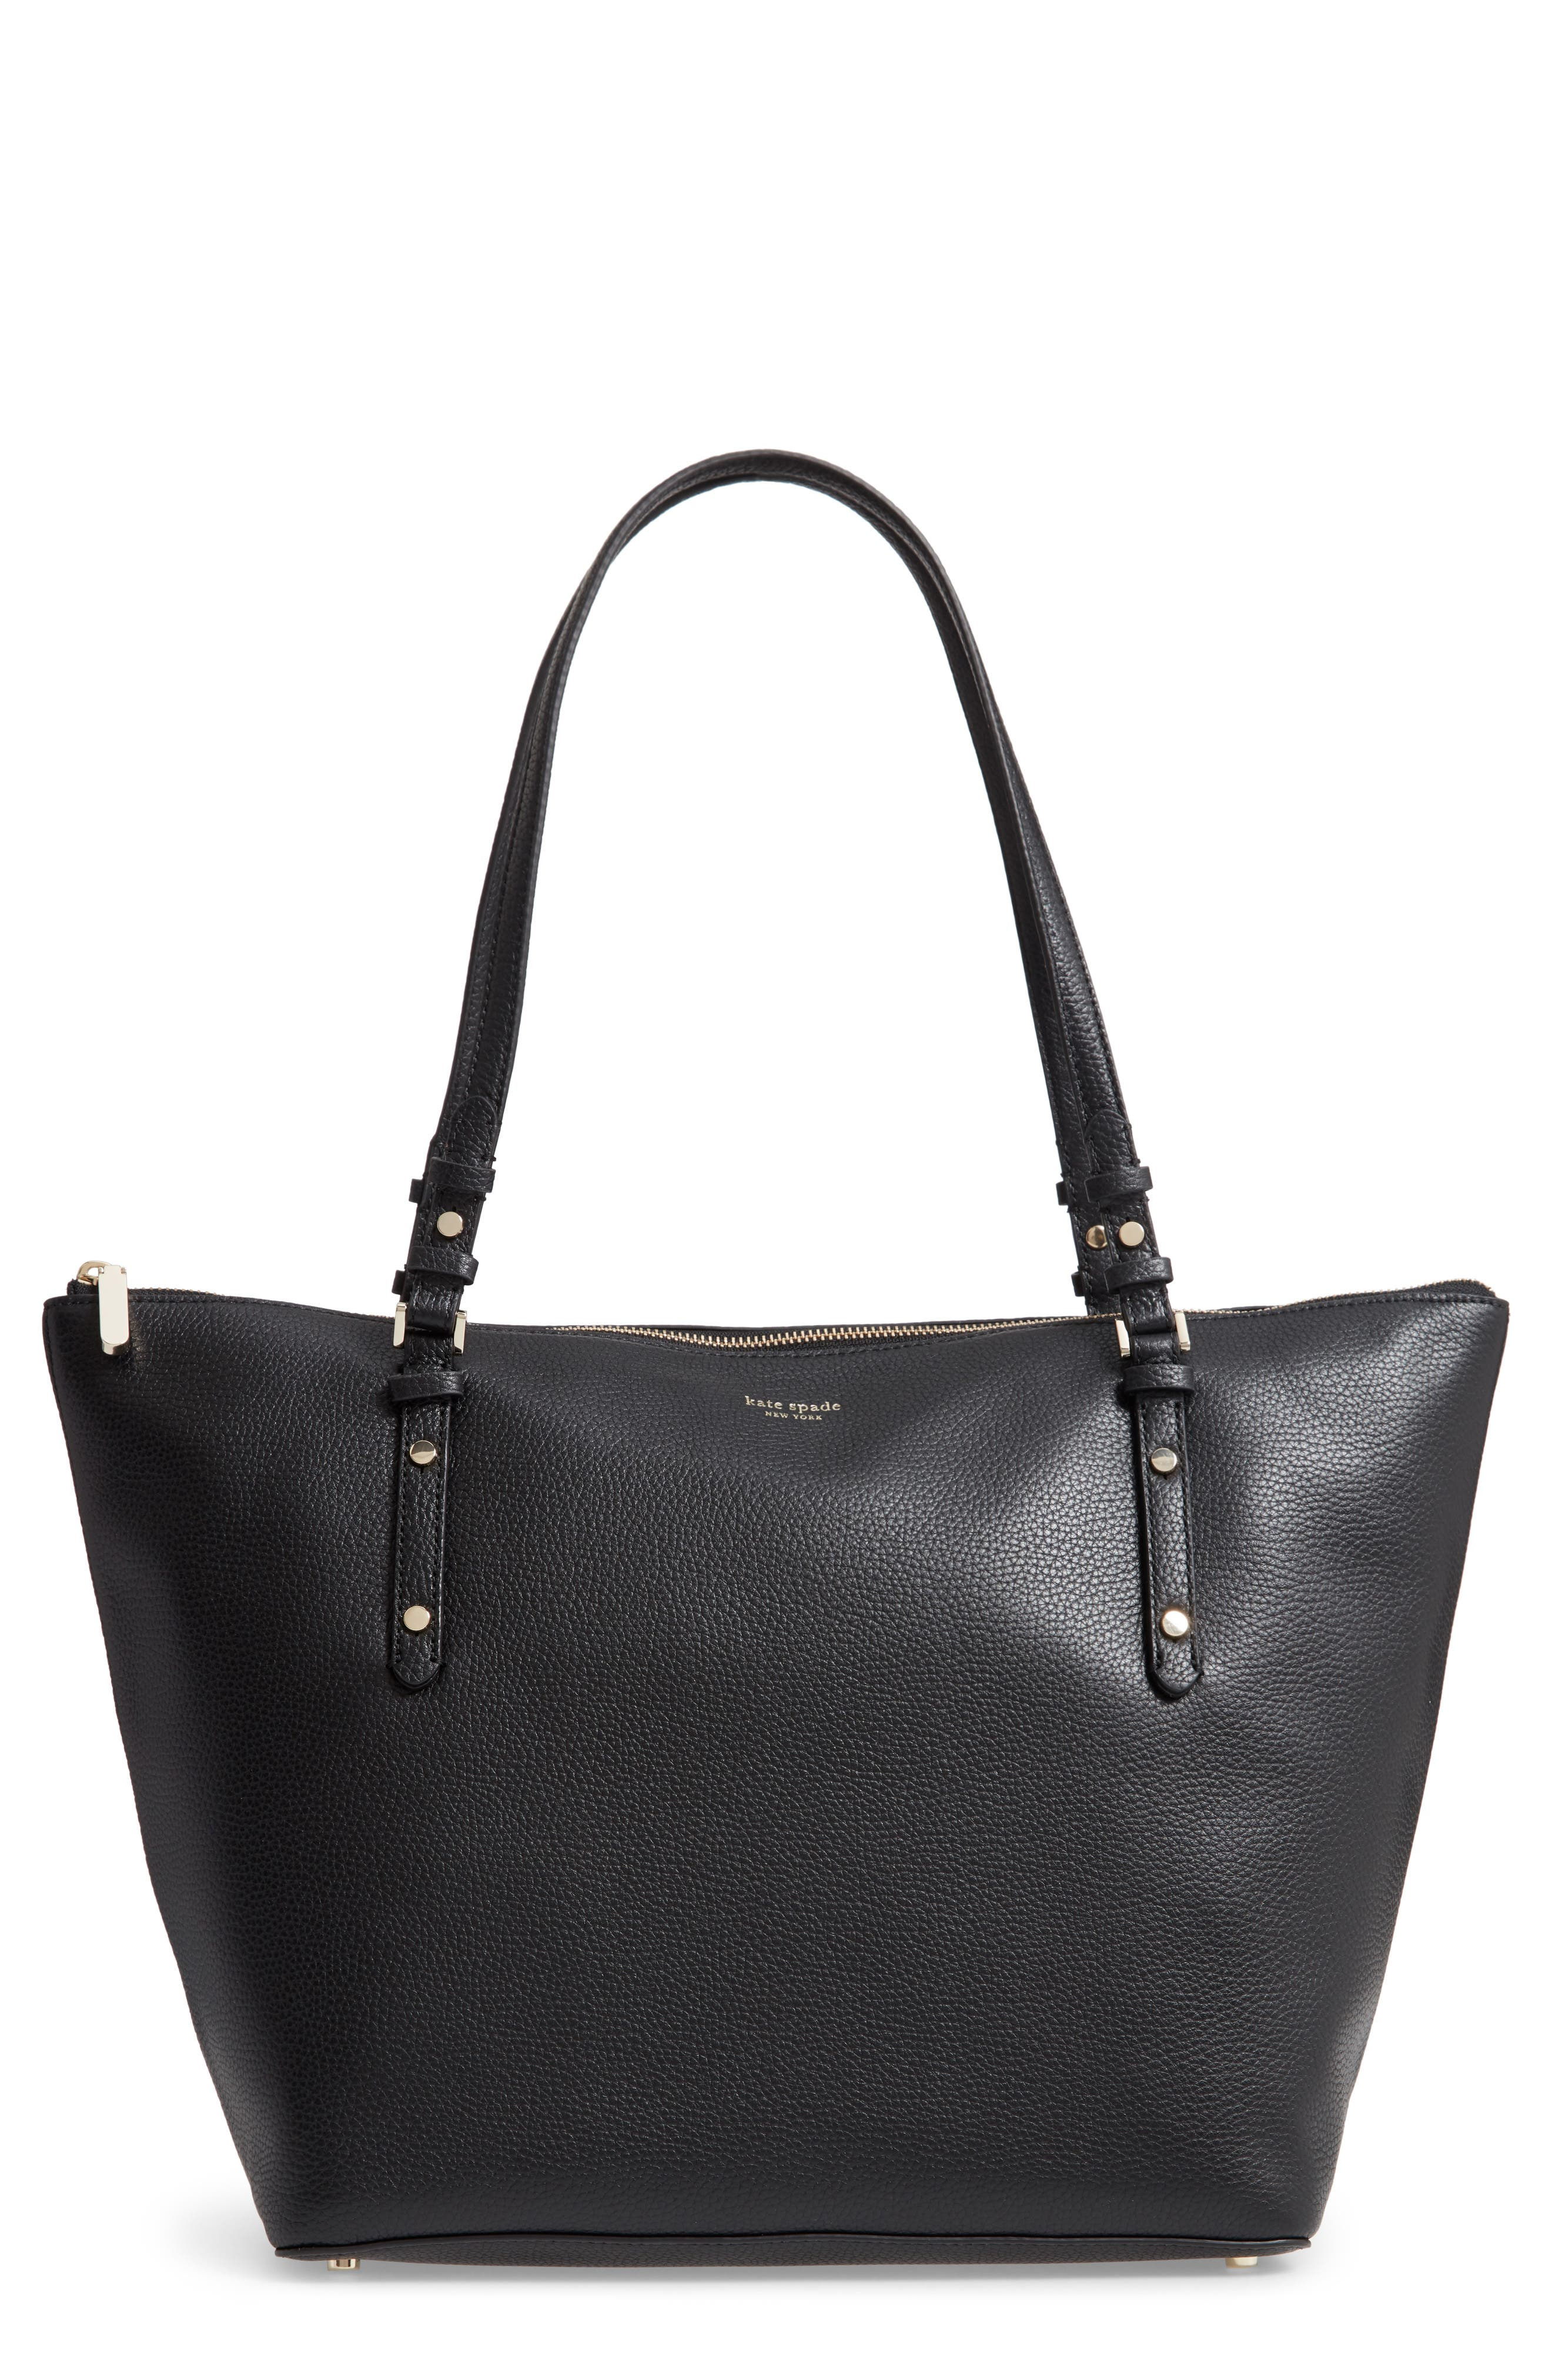 e11123452 Kate Spade New York Tote Bags for Women: Leather, Coated Canvas, & Neoprene  | Nordstrom